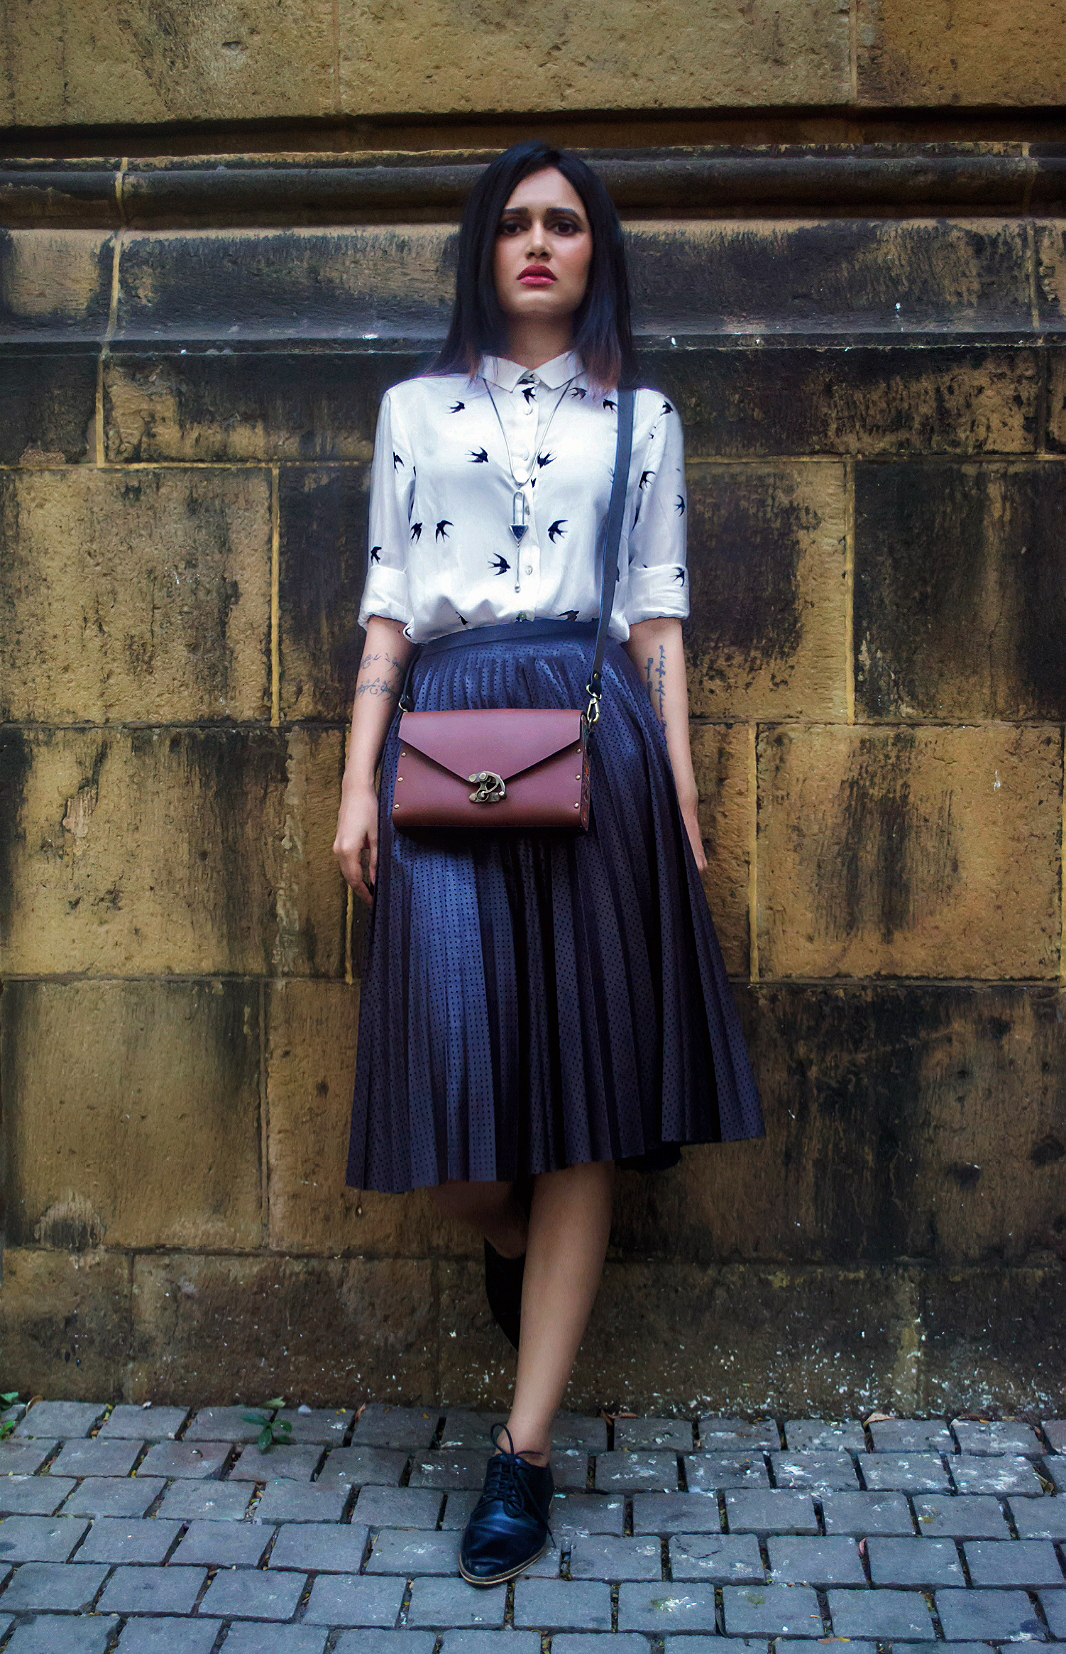 the-chic-armoire-by-nidhi-kunder-swarang-3